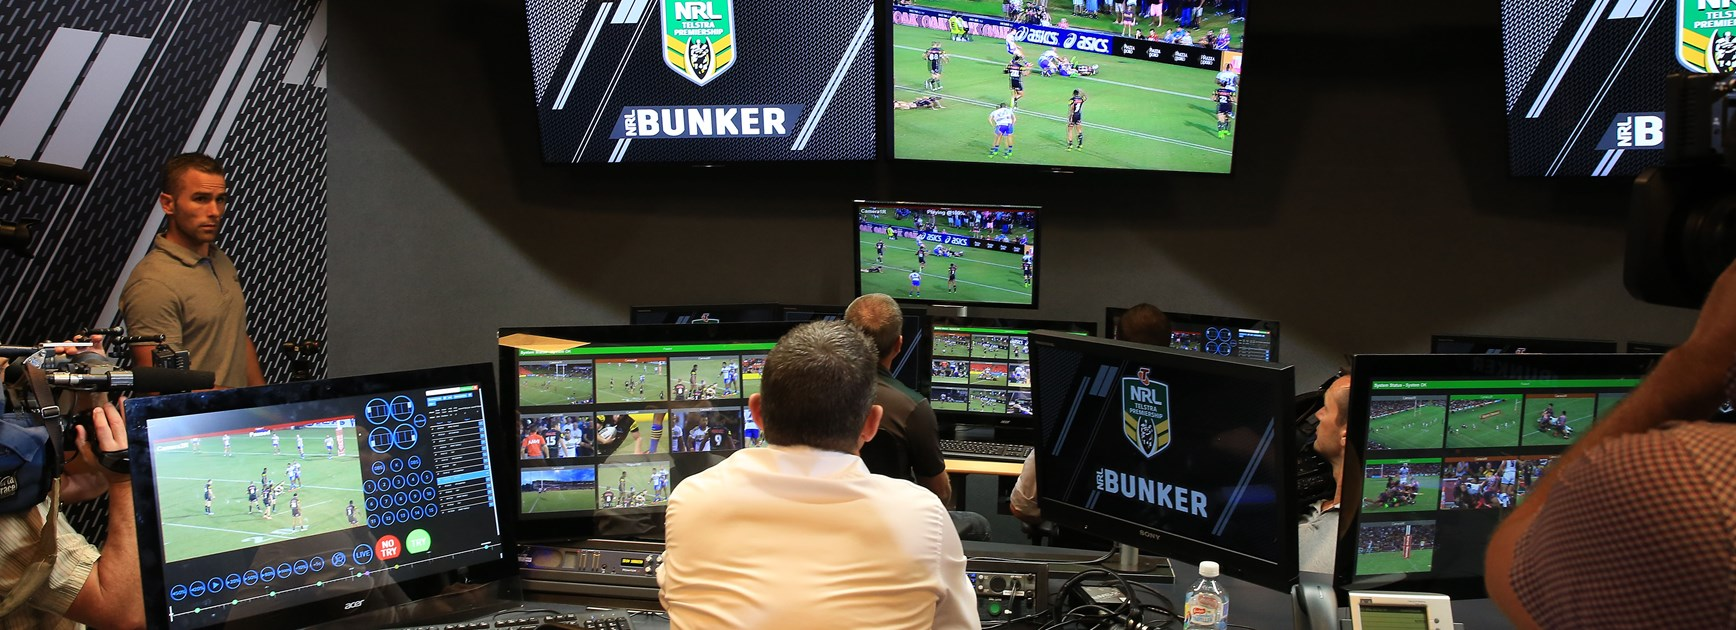 Bunker's two-pronged attack to combat concussion concerns